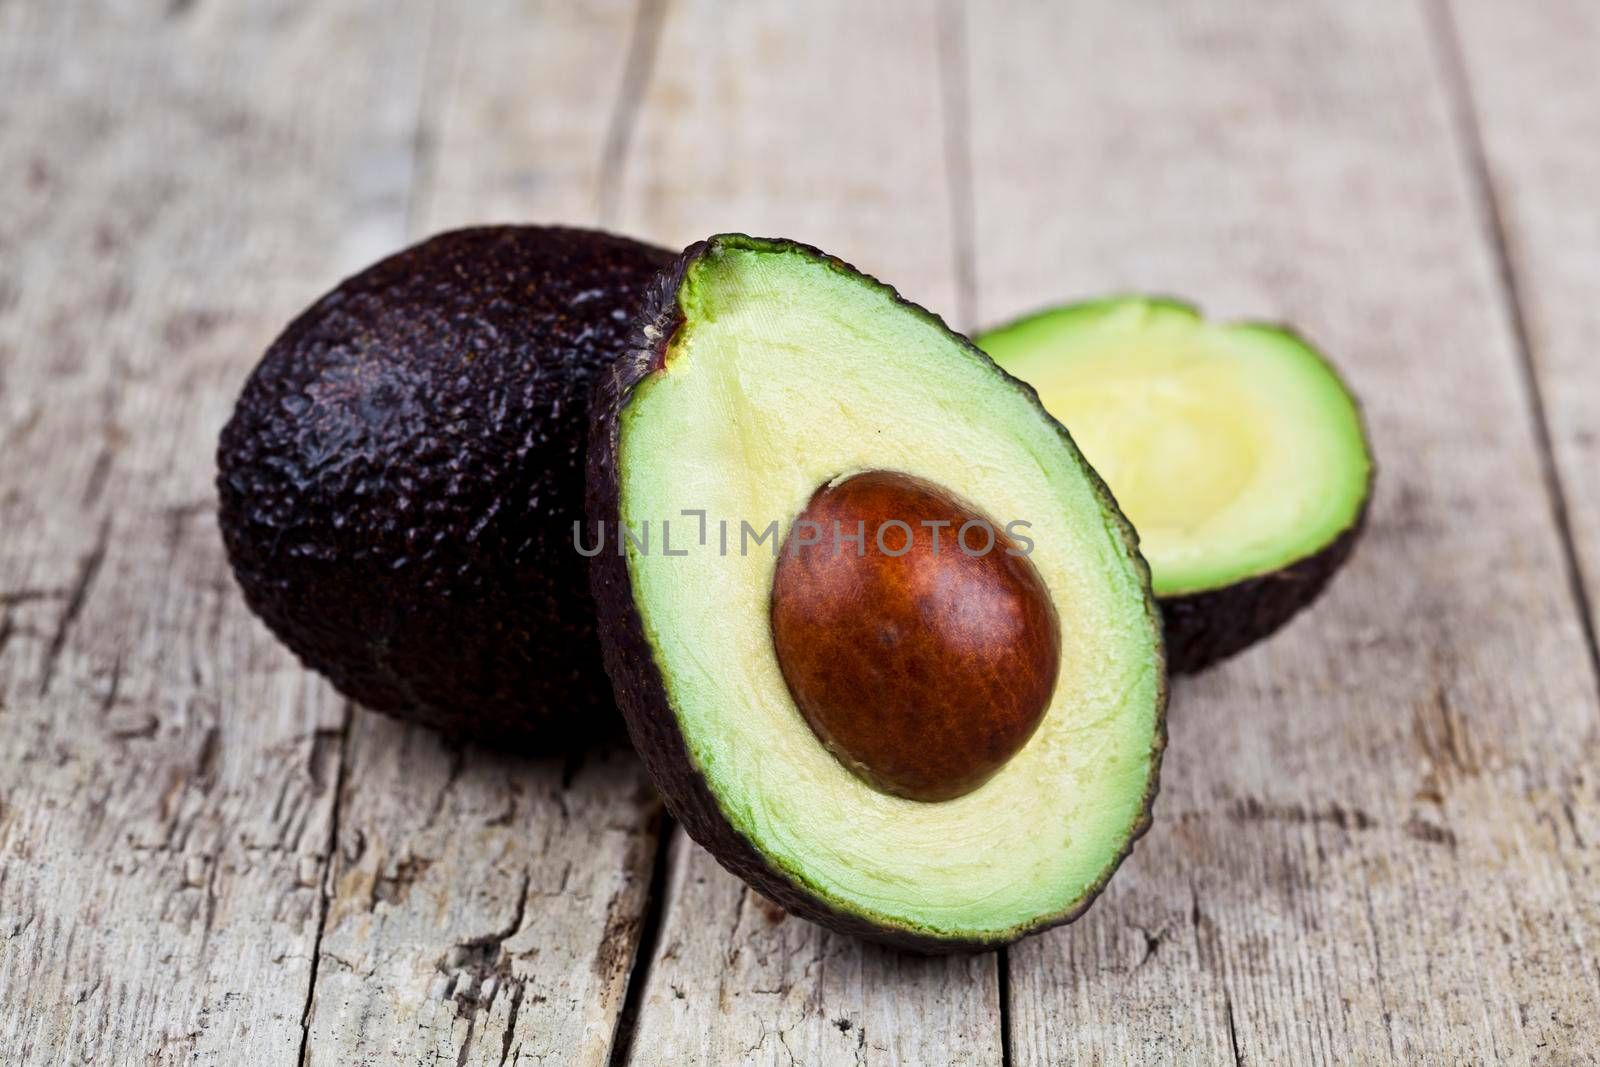 Fresh organic avocado on old wooden table background. Fresh avocado halves on rustic wooden backround. Healthy food concept.